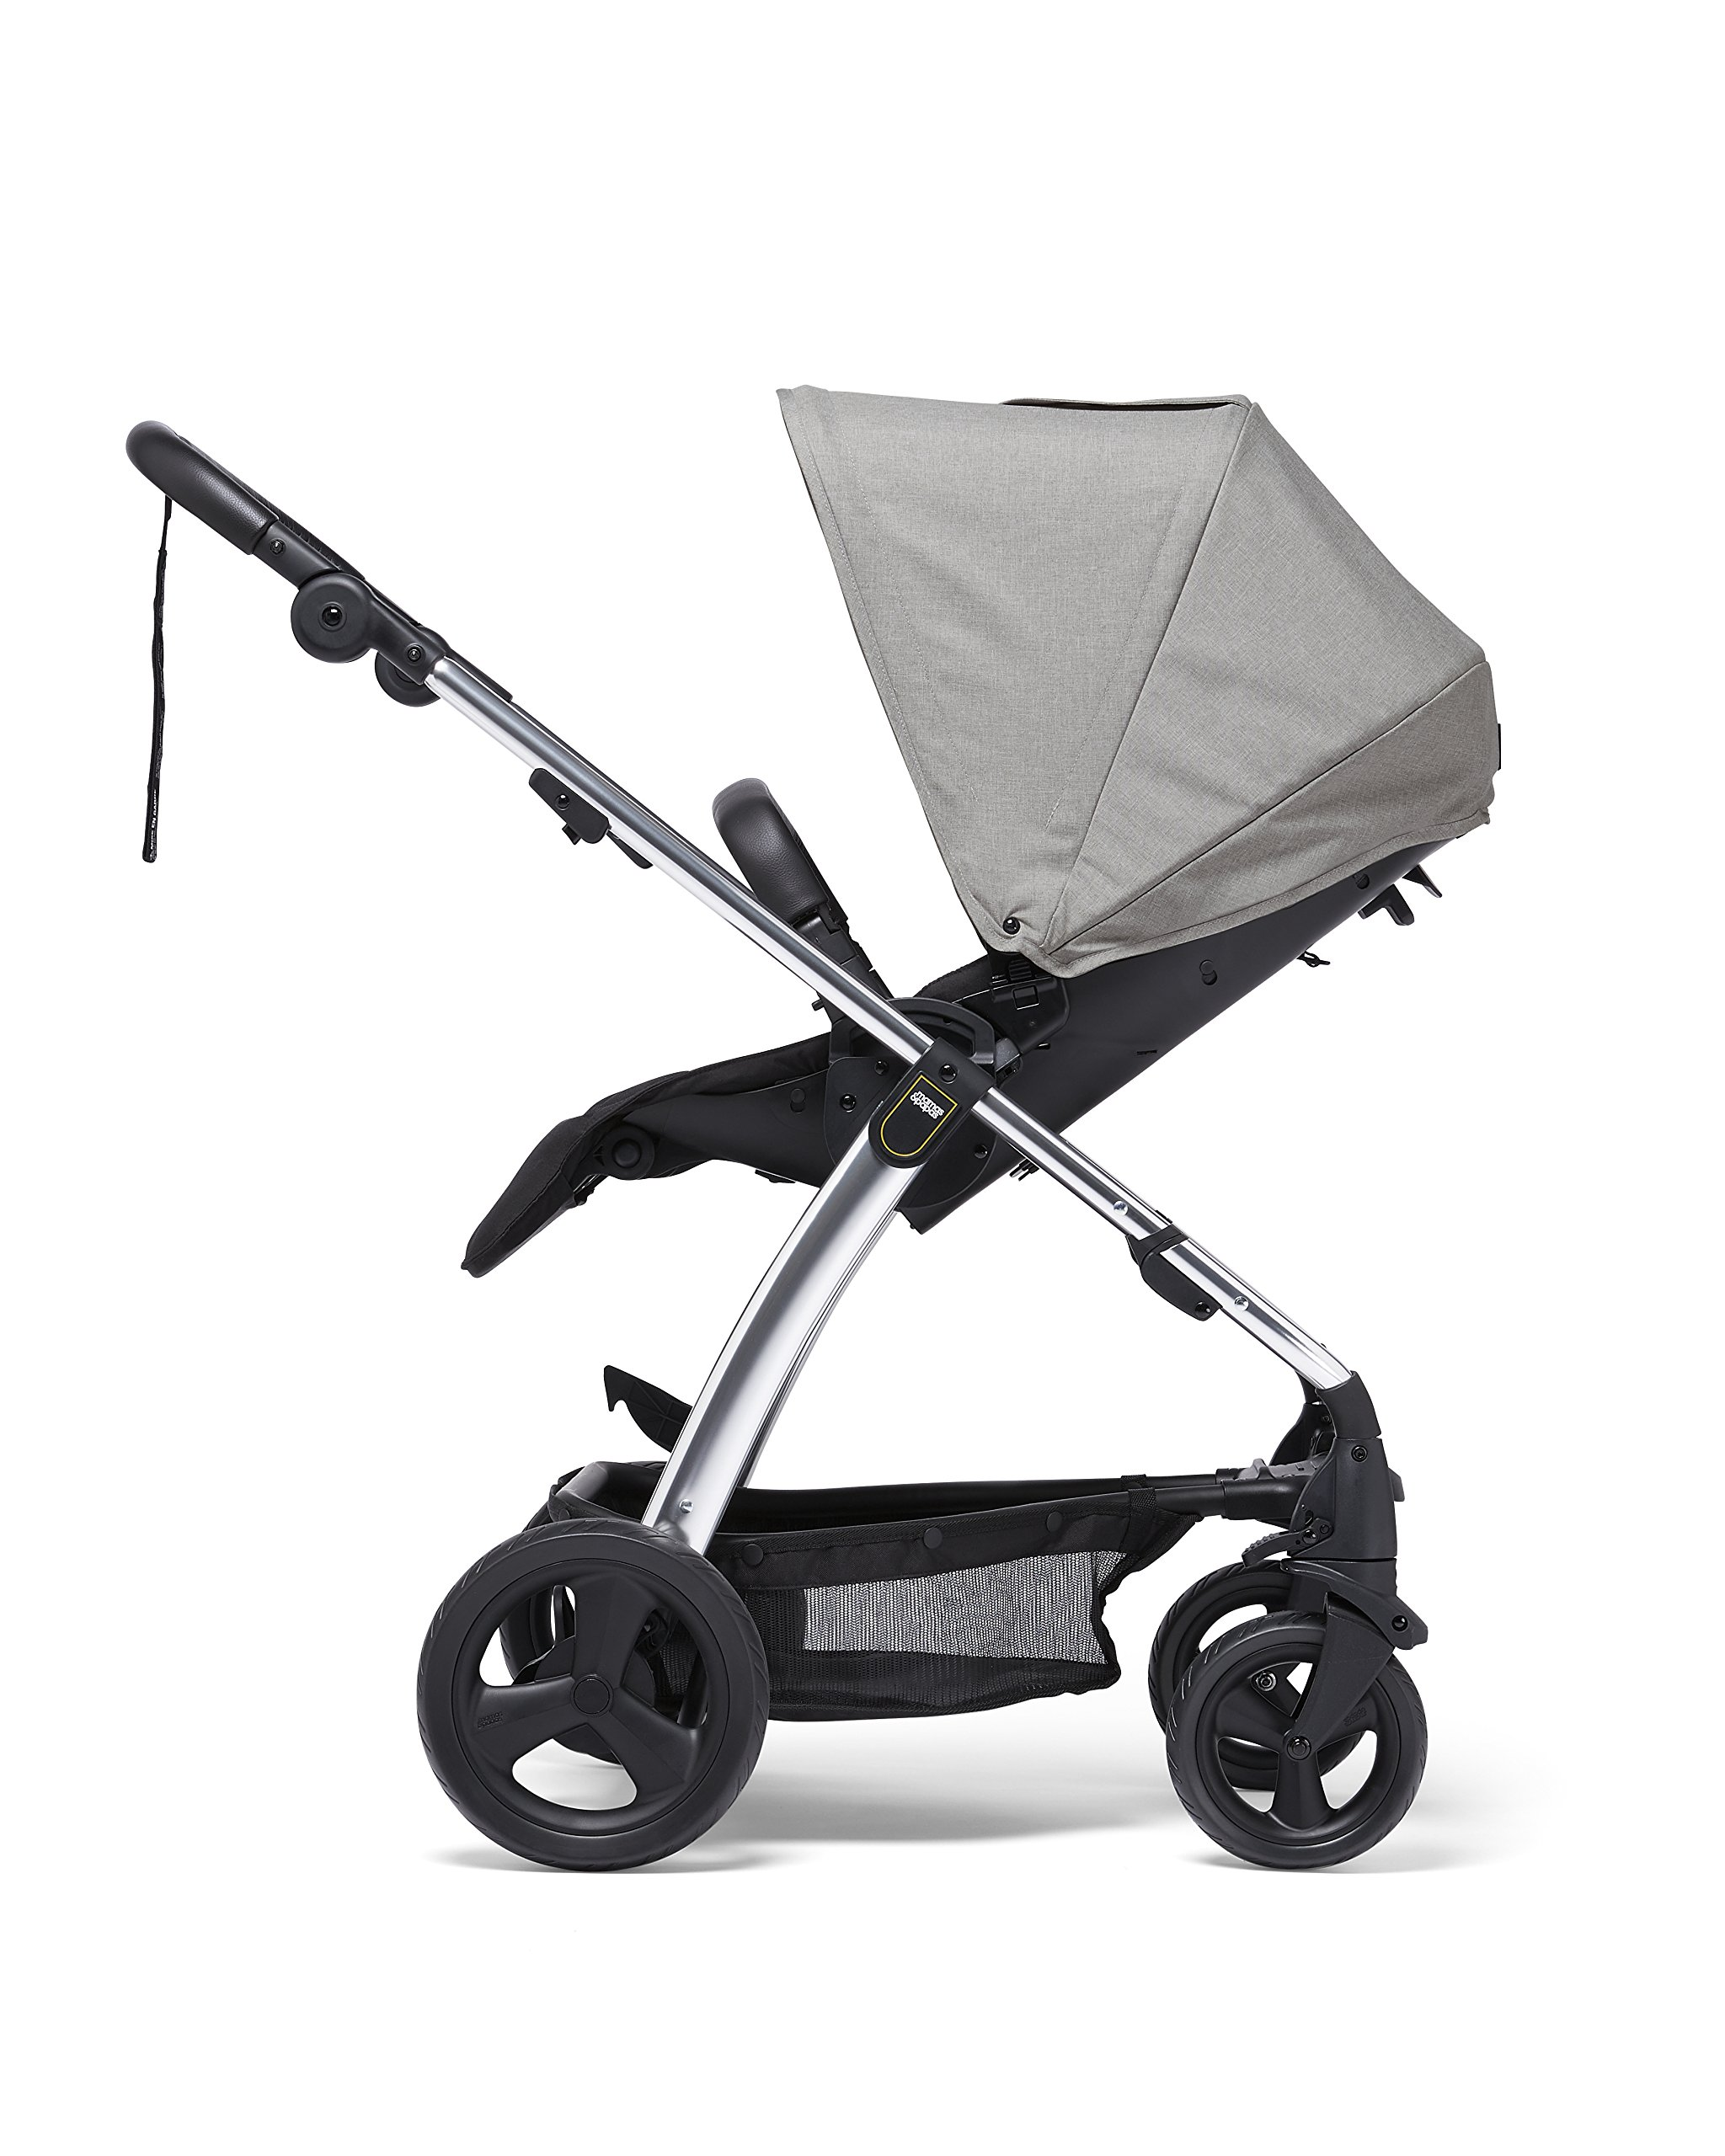 Mamas & Papas Sola² Lightweight Pushchair with Dual Position Seat, Compact Fold & Dual Suspension Wheels - Light Grey Mamas & Papas Great stearability - front and rear suspension wheels ensure a smooth ride for baby's travels. The wheels are also lockable for your peace of mind Large canopy - the large upf 50+ hood protects against harmful rays and a magnetic window lets you check on baby. Attach the included rain cover for drizzly days Dual position - baby can face you or the world to suit them. Adjust the seat to the lie-flat position for a comfortable space for your little one to sleep 3